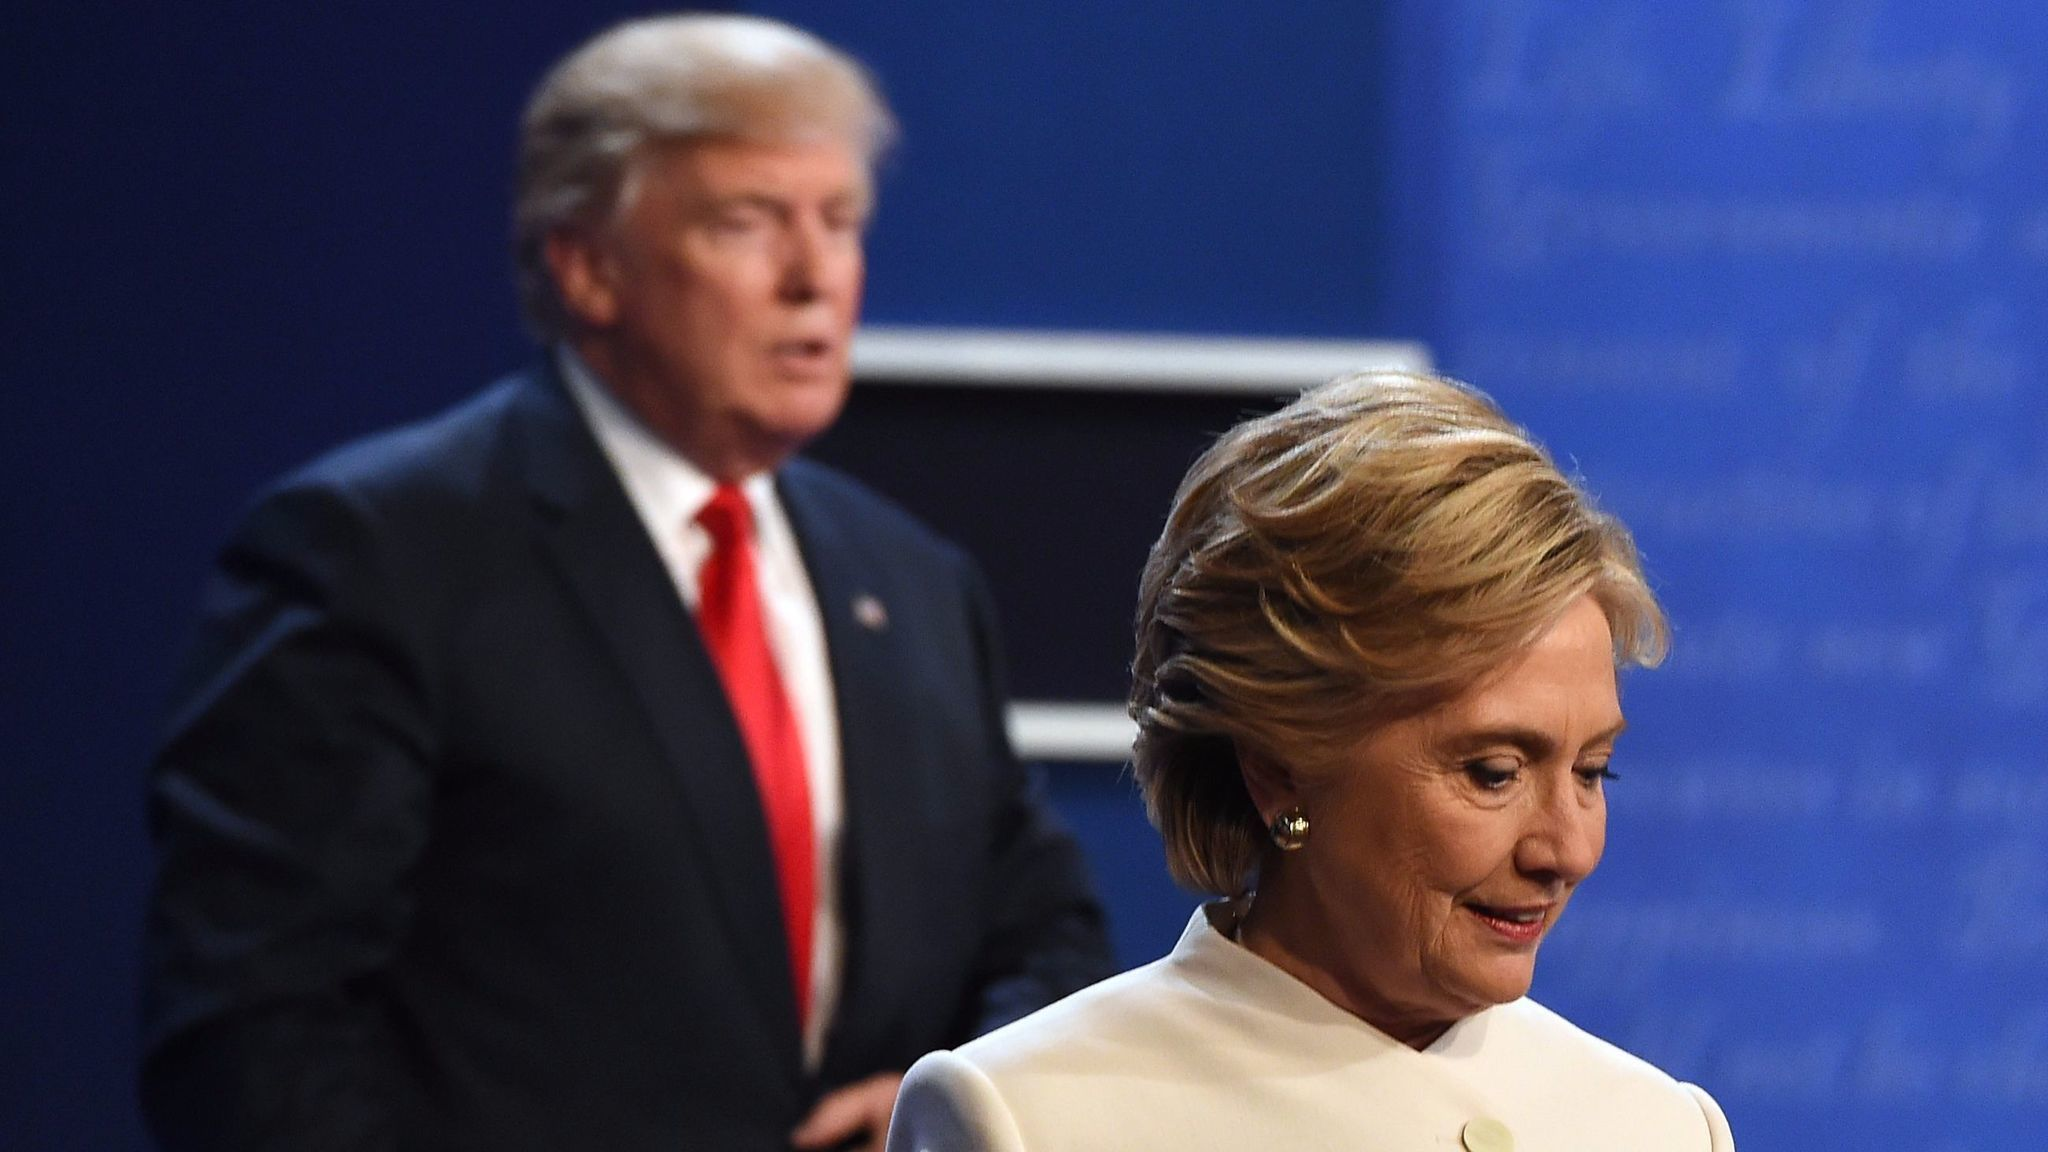 Donald Trump and Hillary Clinton during the second presidential debate, Oct. 19, 2016